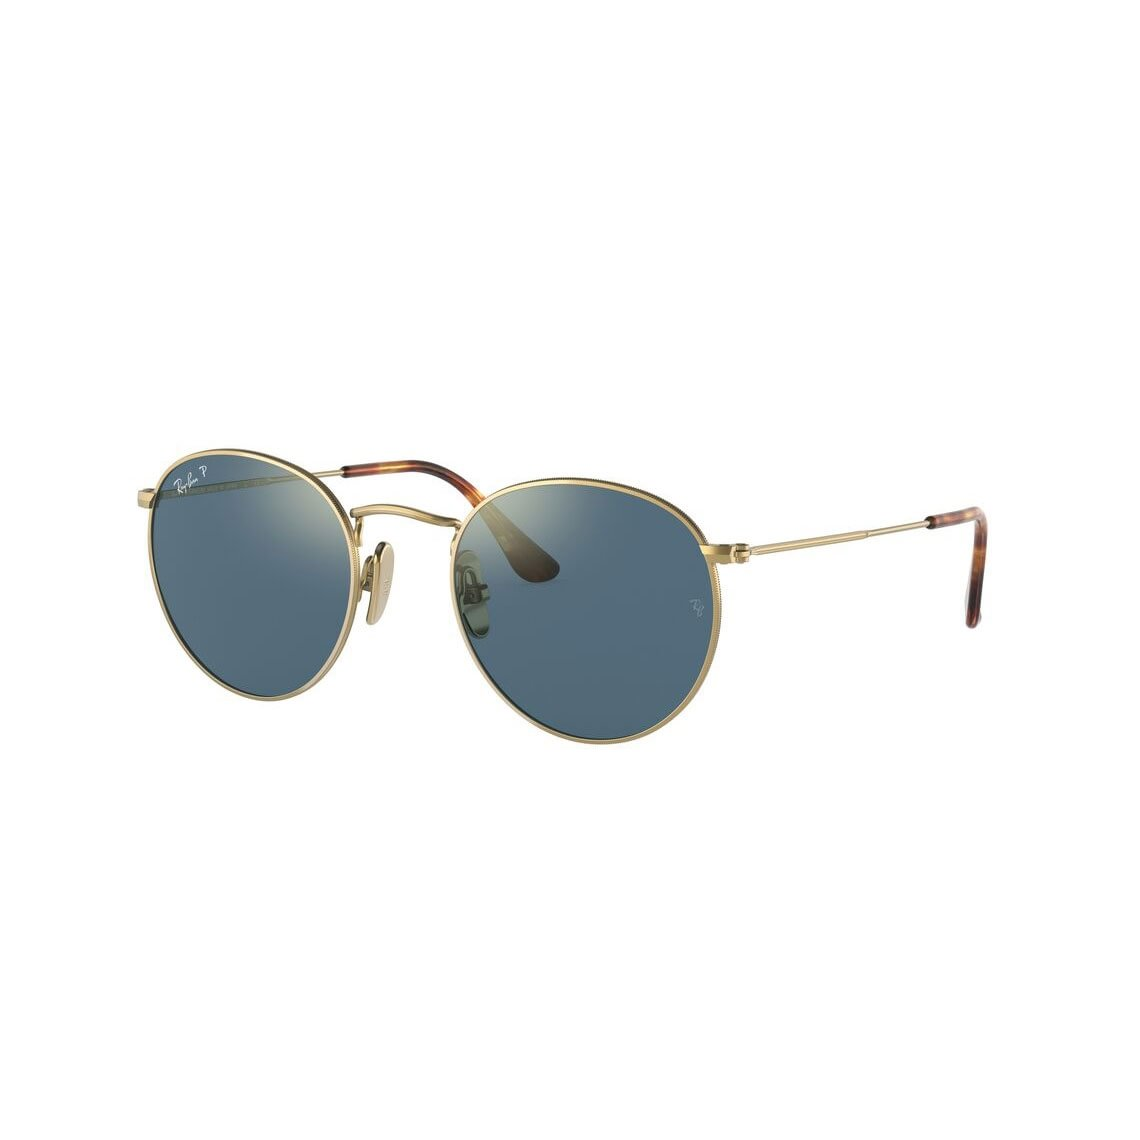 Ray-Ban Round RB8247 9217T0 5021